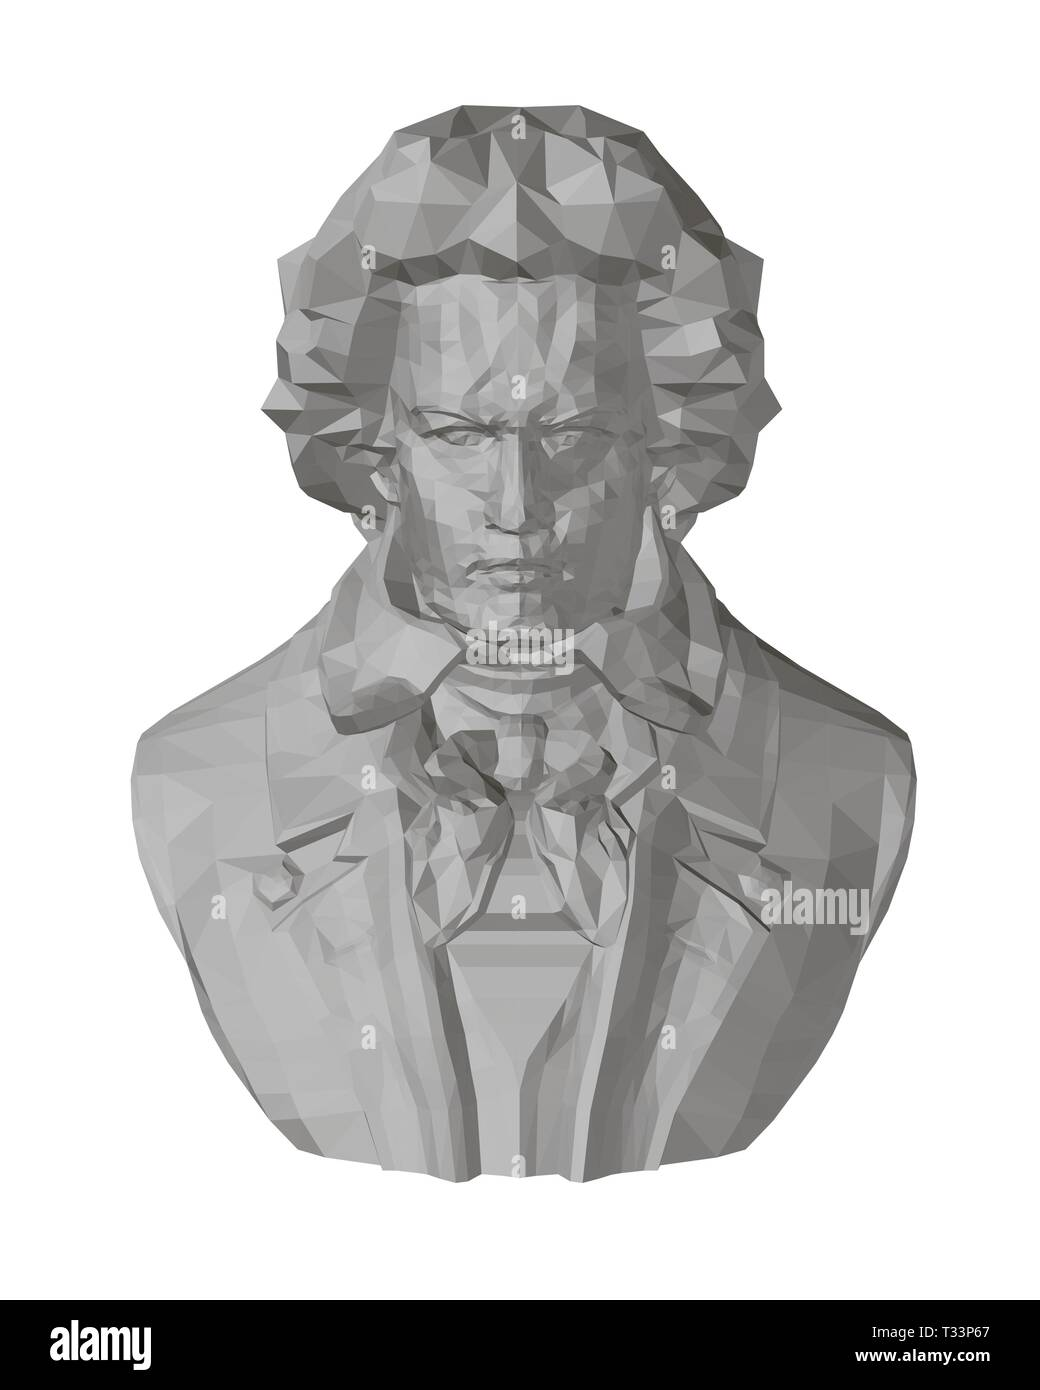 Bust of Beethoven. Polygonal bust of Beethoven 3D. Front view. Beethoven sculpture. Vector illustration - Stock Image